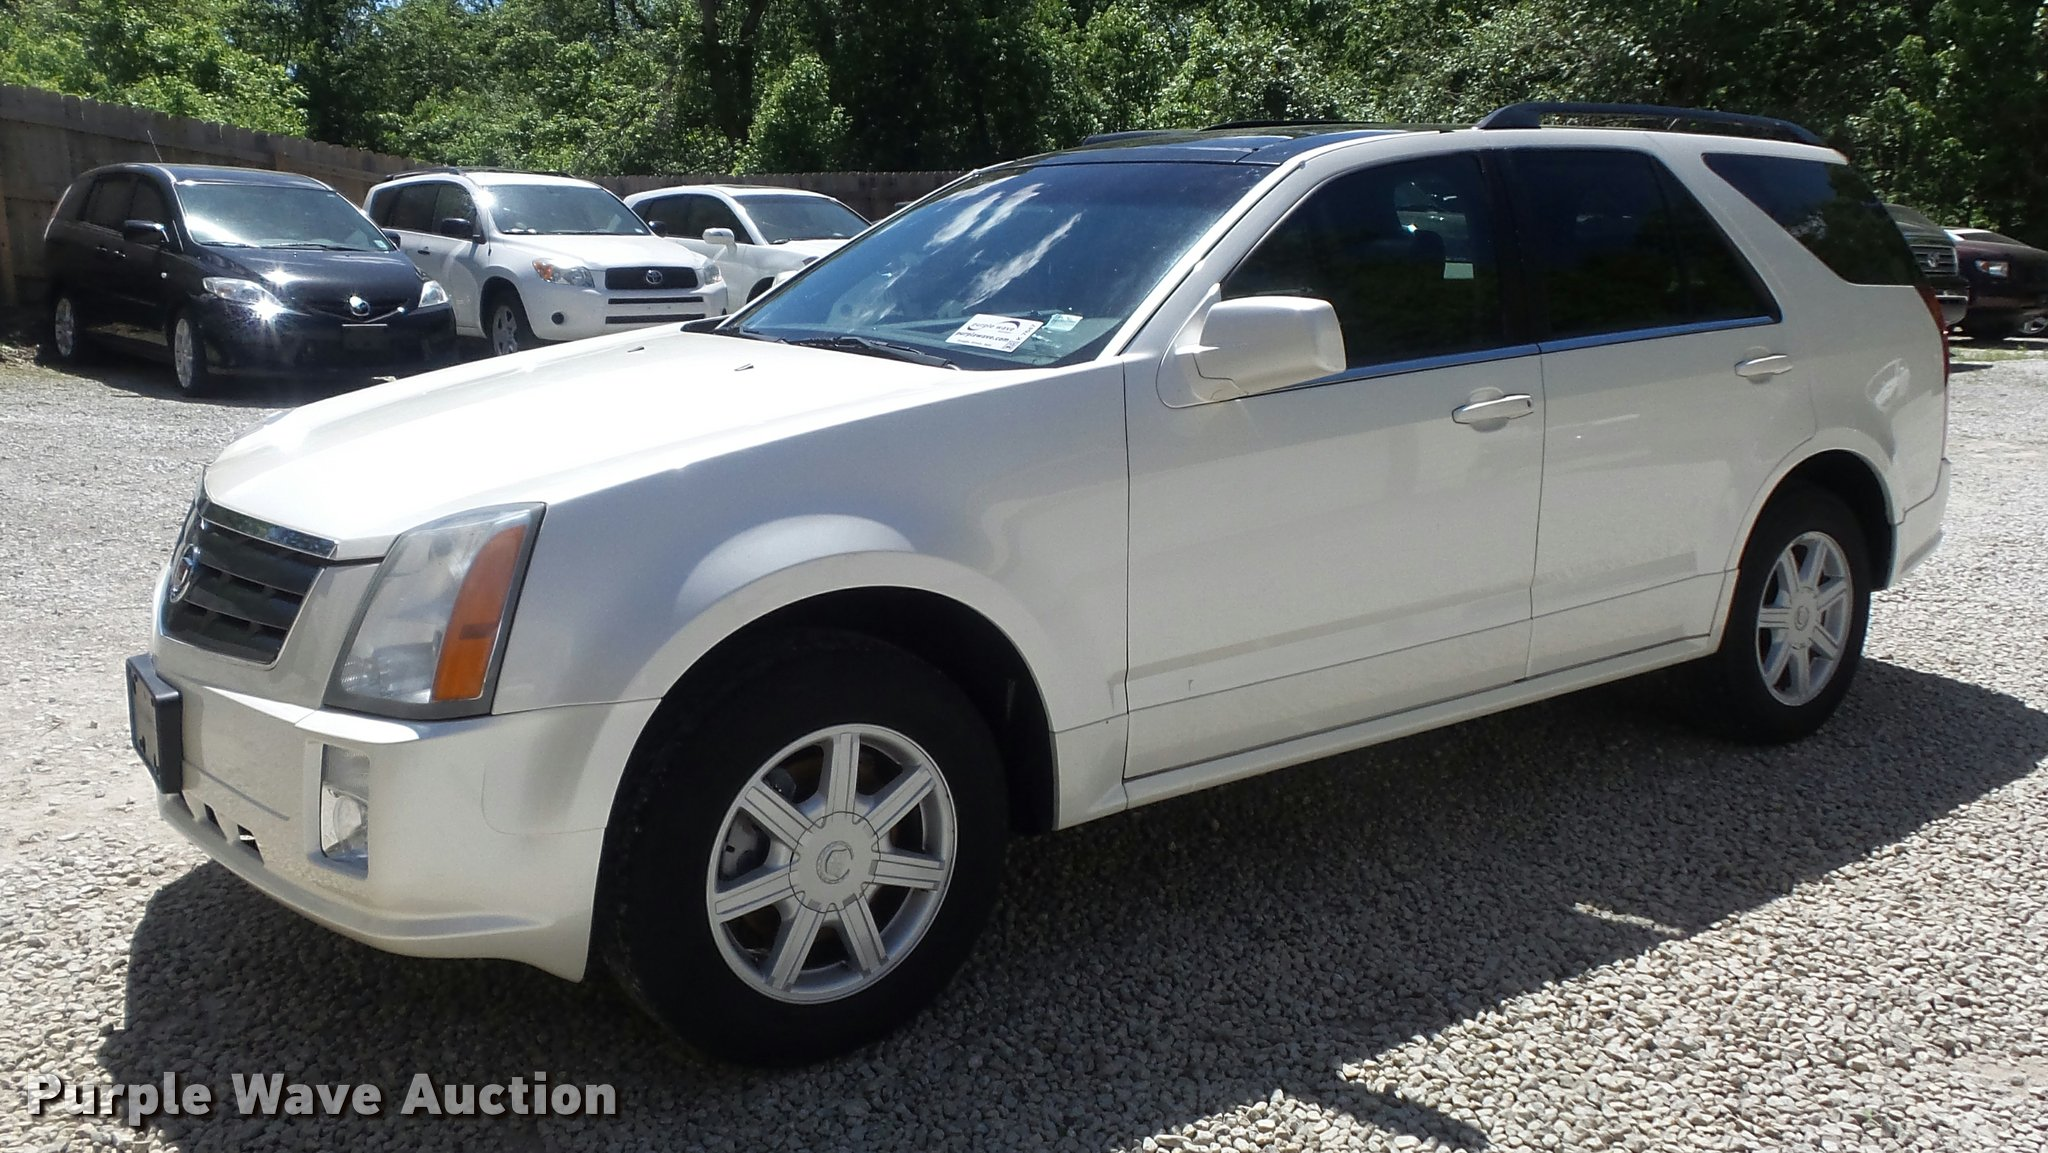 item new suv size in srx cadillac window a sale june for auction full sold vehicles